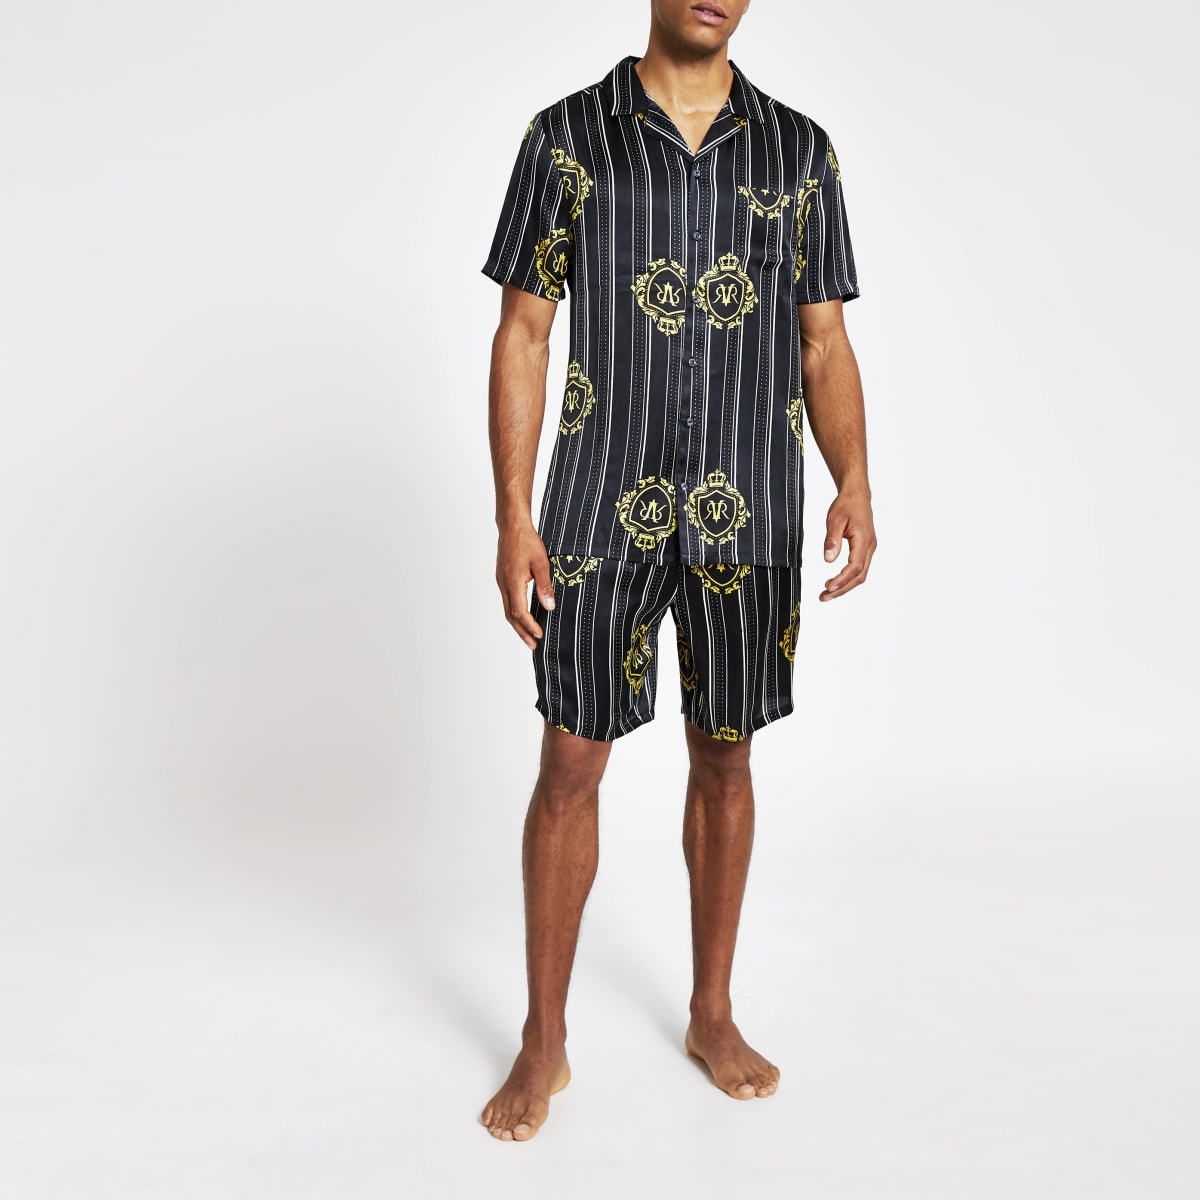 Black RVR print satin short family pyjama set